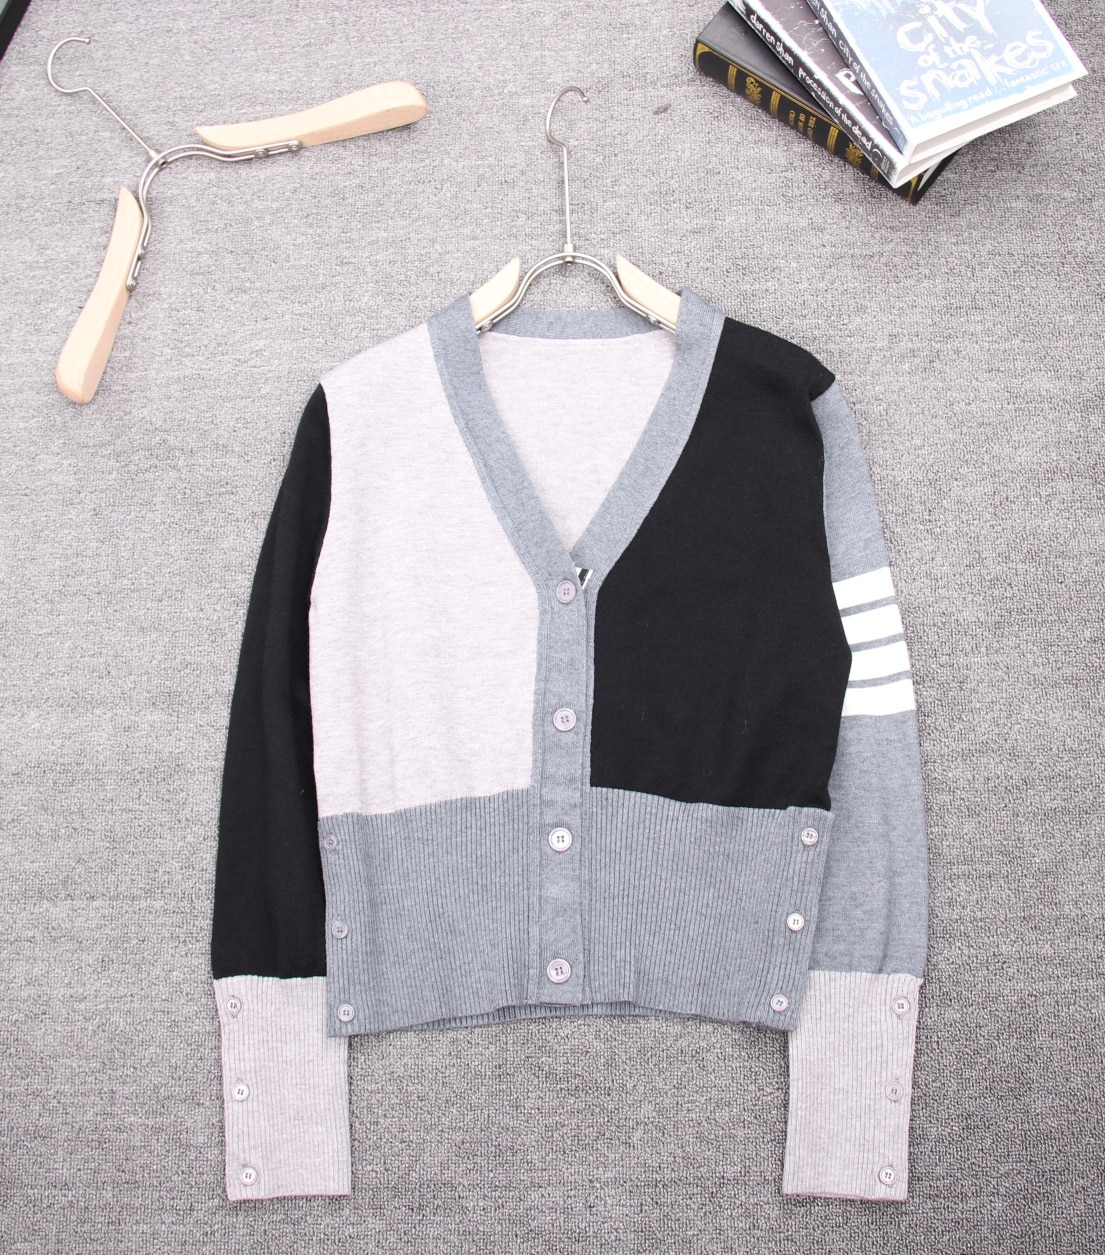 2021 New Spring Autumn Women Cardigans Sweater Fashion Slim Ladies Knitted Sweater Female Casual V-neck Sweaters Pull Femme Tops enlarge